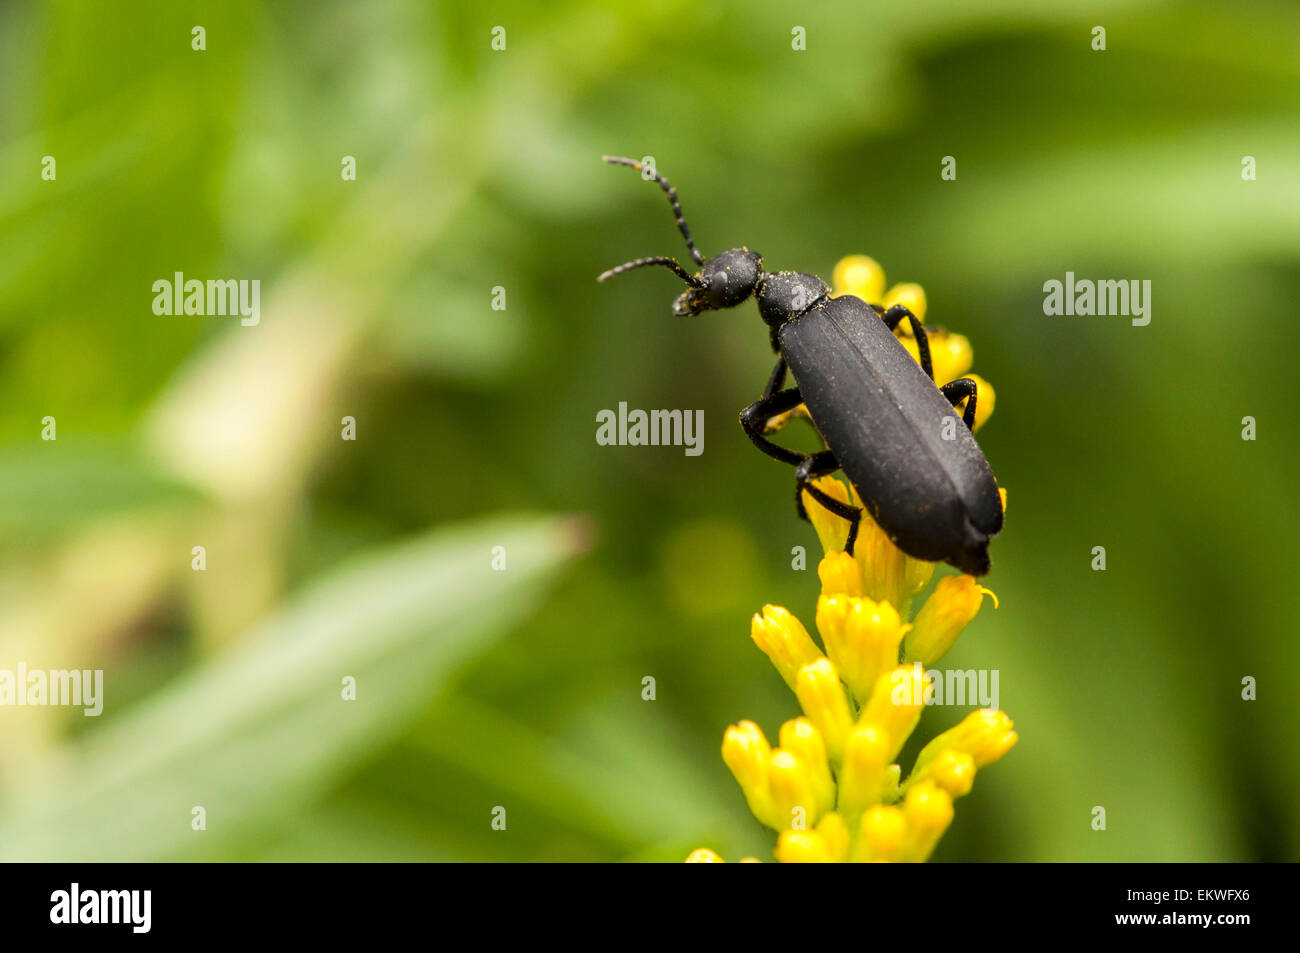 Black blister beetle bug on yellow goldenrod - Stock Image